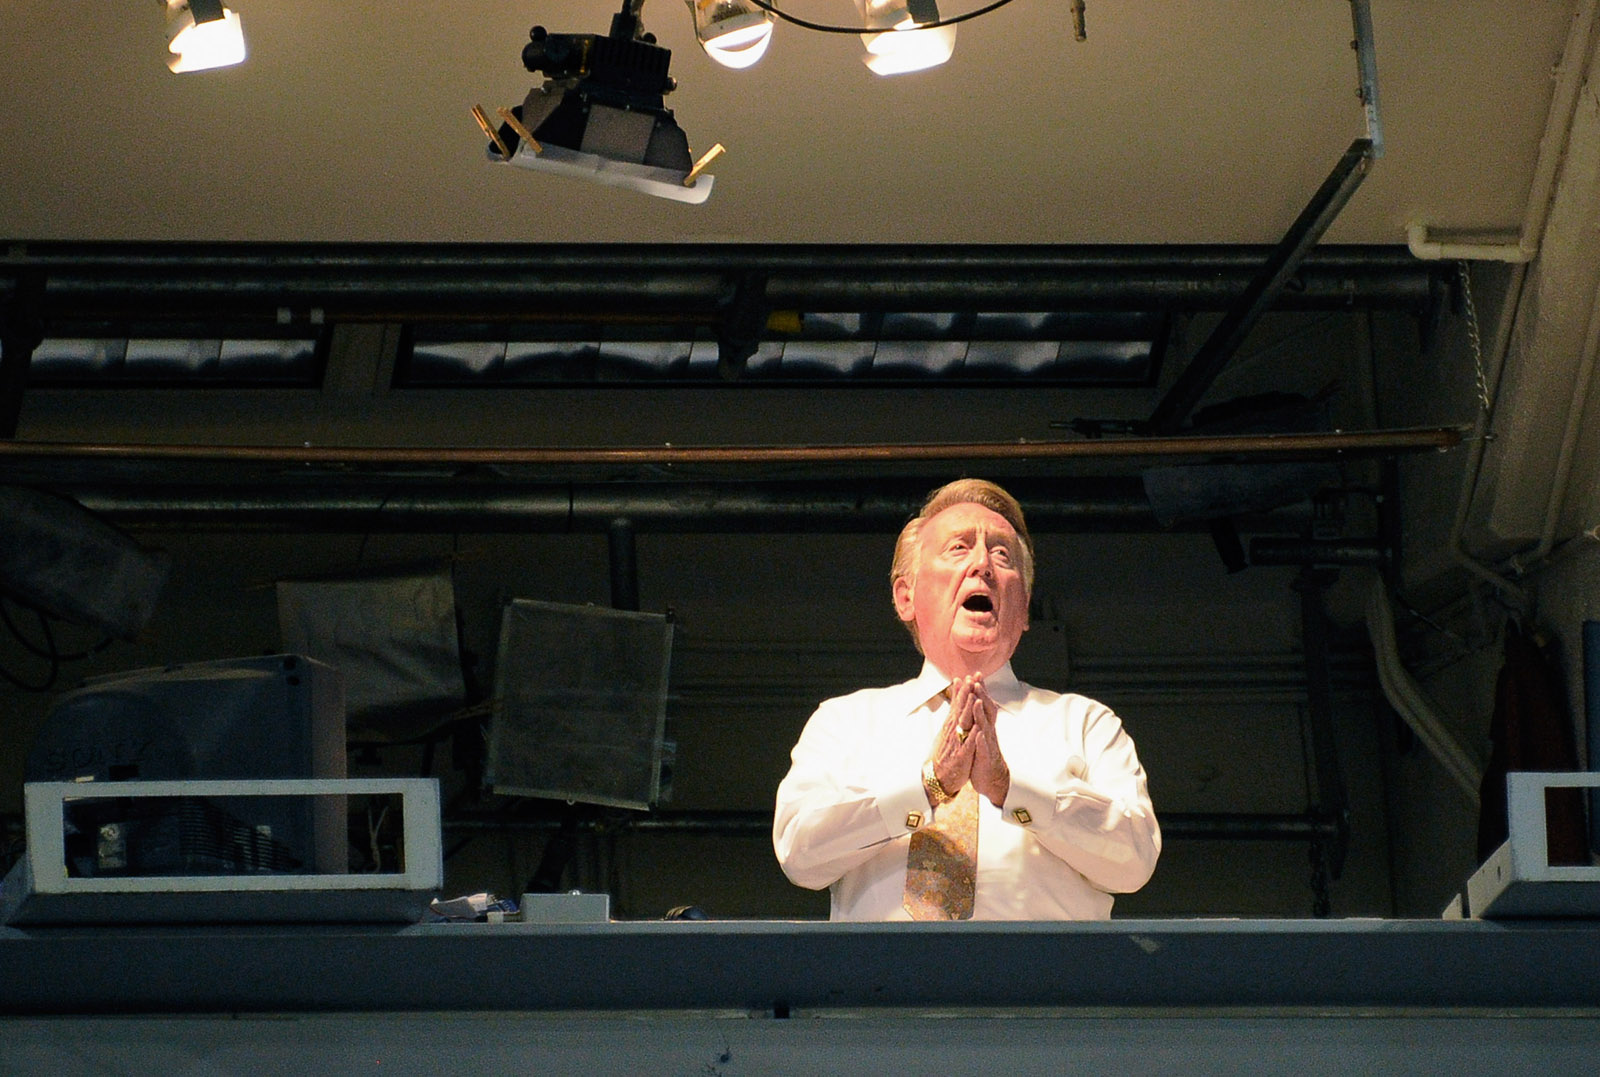 """LOS ANGELES, CA - SEPTEMBER 14: Vin Scully the play-by-play voice of the Los Angeles Dodgers sings """"Take Me Out to the Ball Game"""" song, which has become the unofficial anthem of baseball, during the seventh inning of the baseball game between the Arizona Diamondbacks and the Los Angeles Dodgers at Dodger Stadium on September 14, 2011 in Los Angeles, California.  (Photo by Kevork Djansezian/Getty Images)"""